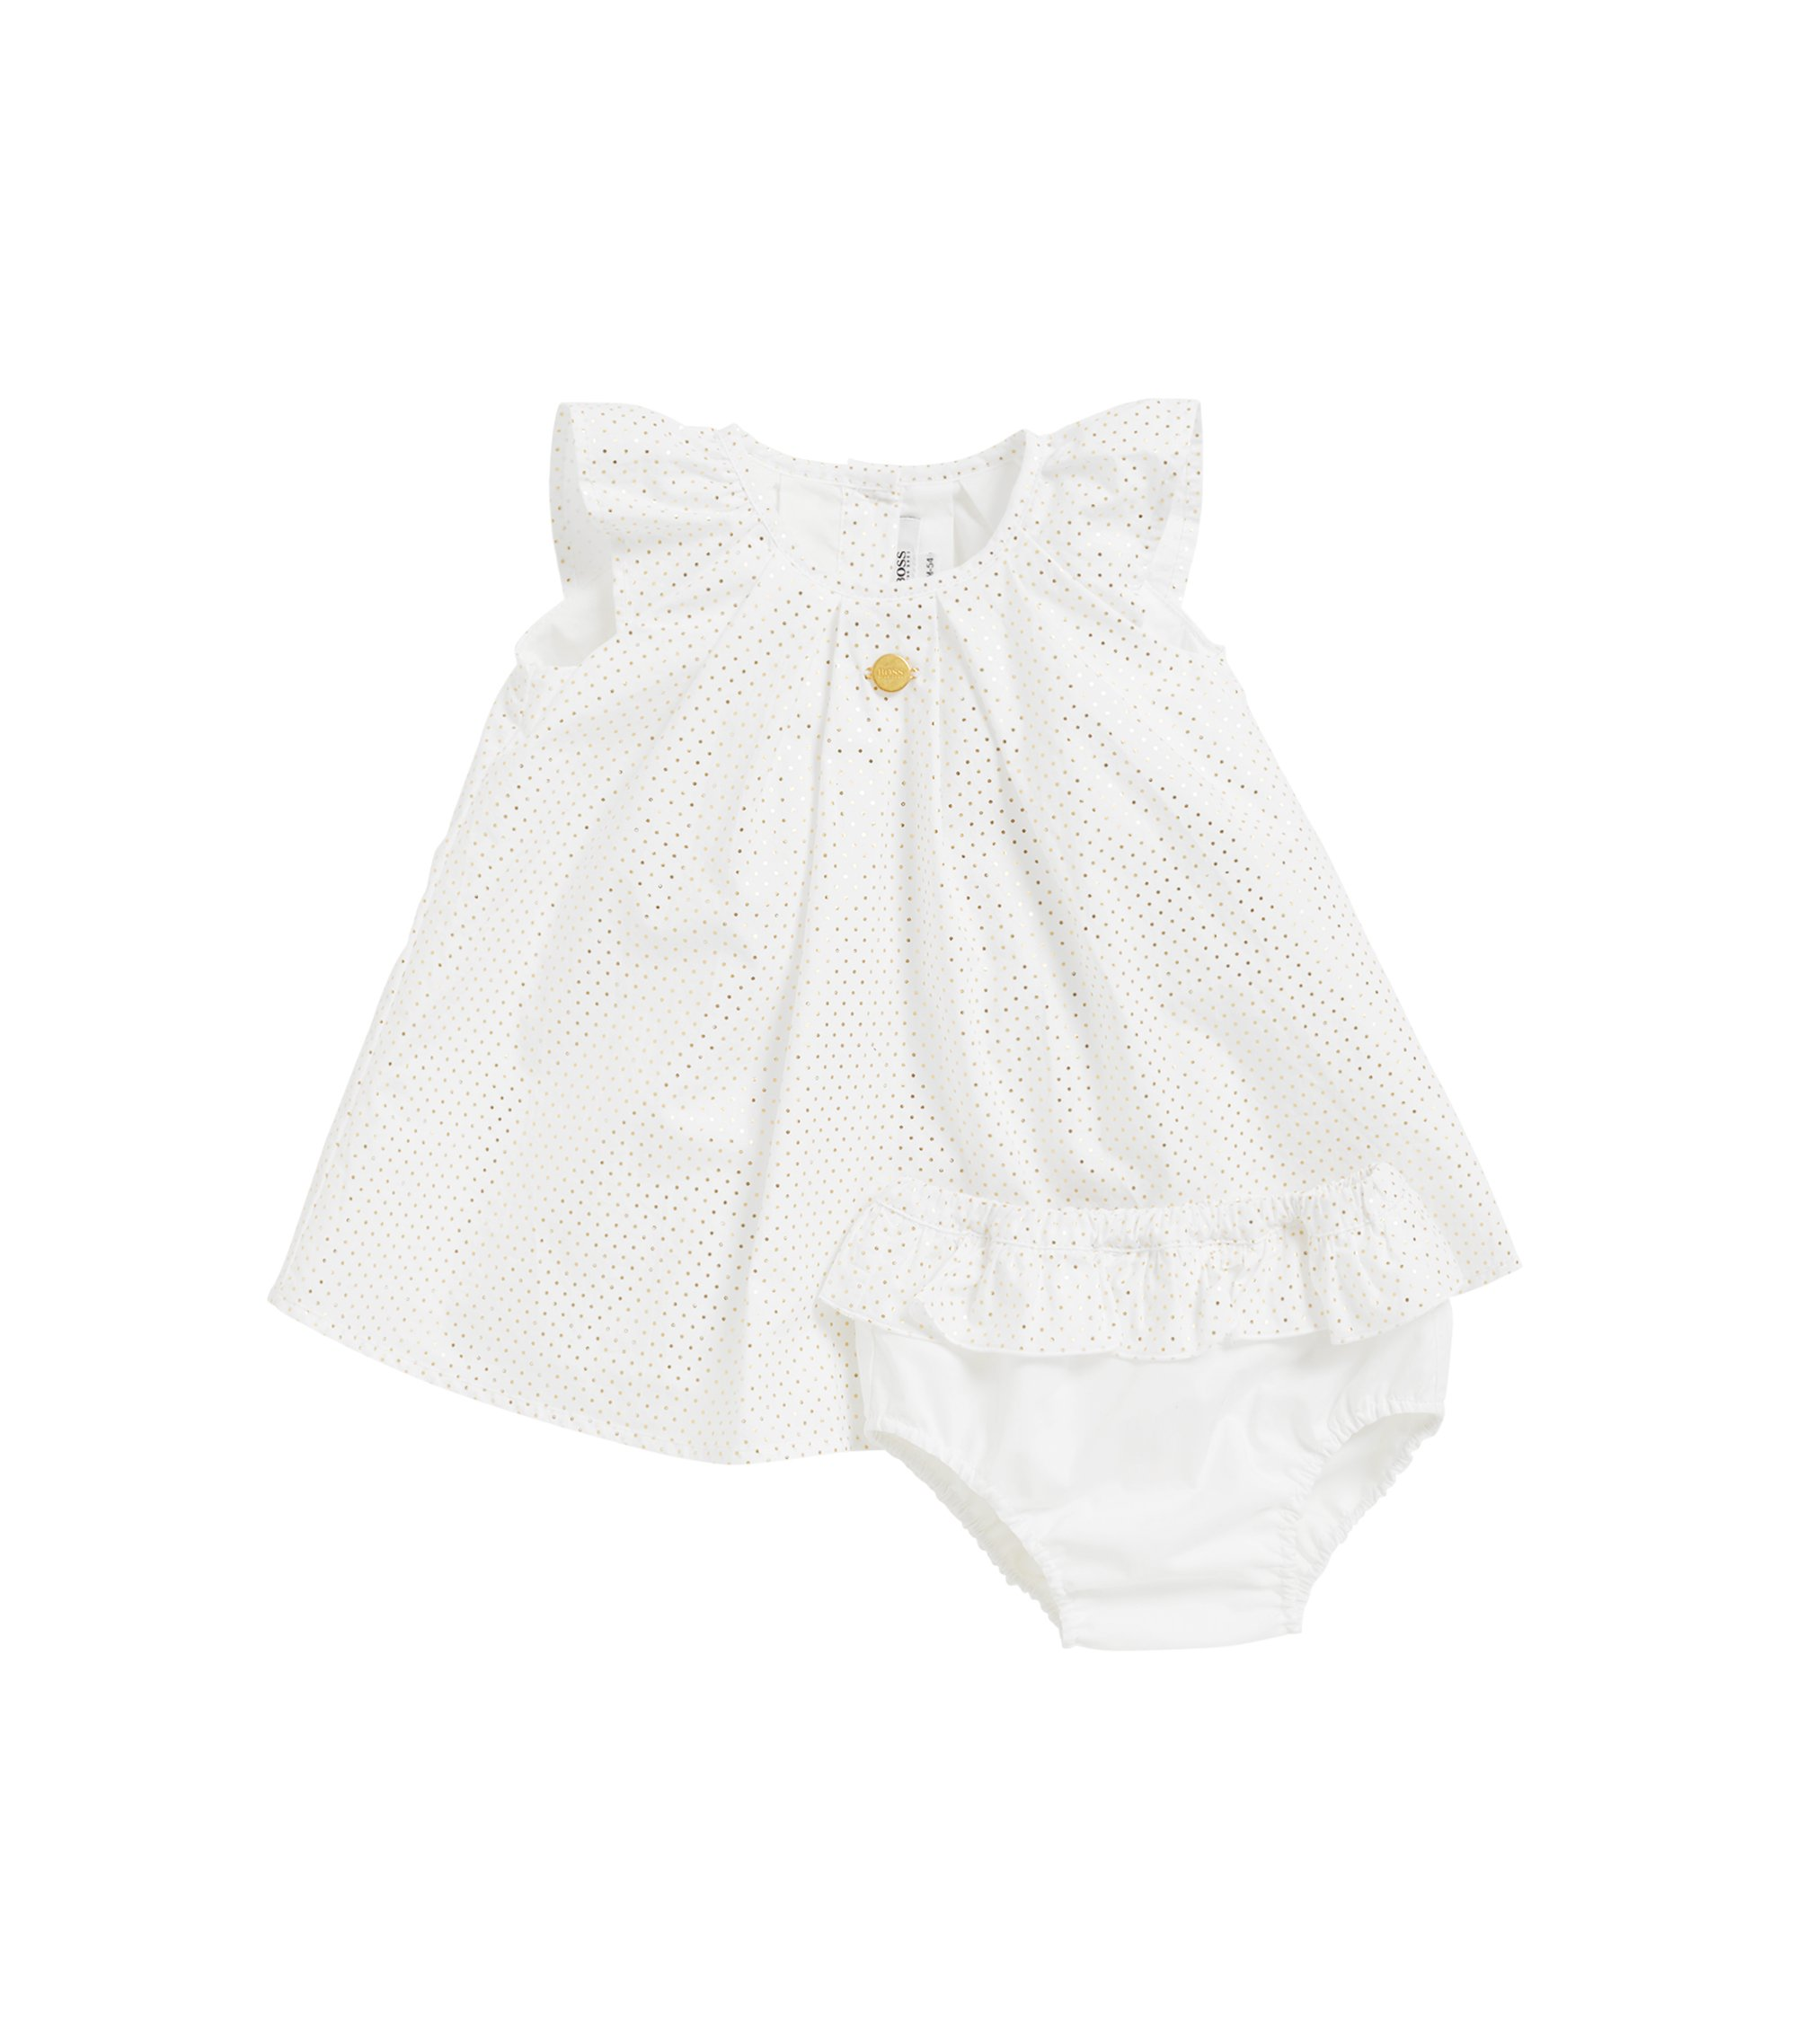 Baby dress and bloomers in cotton percale, White